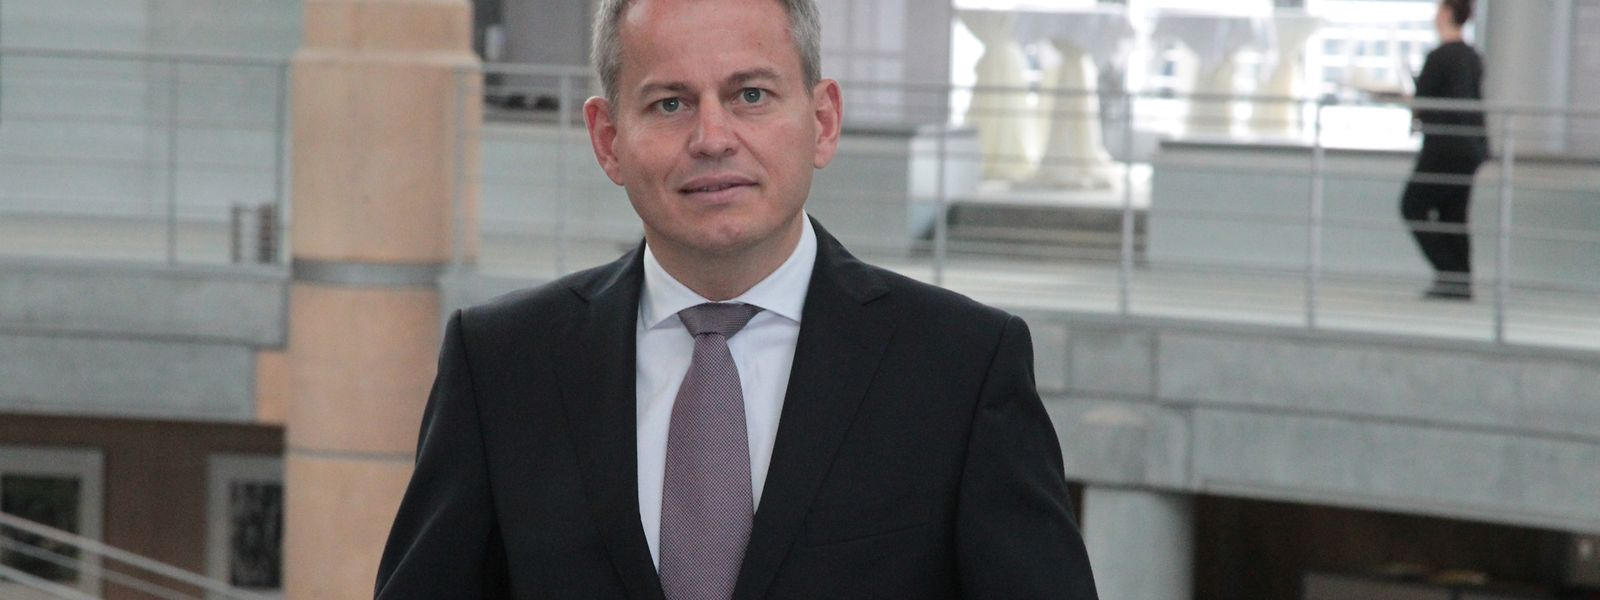 Frank Krings, leitet die Deutsche Bank Luxembourg seit April 2016.